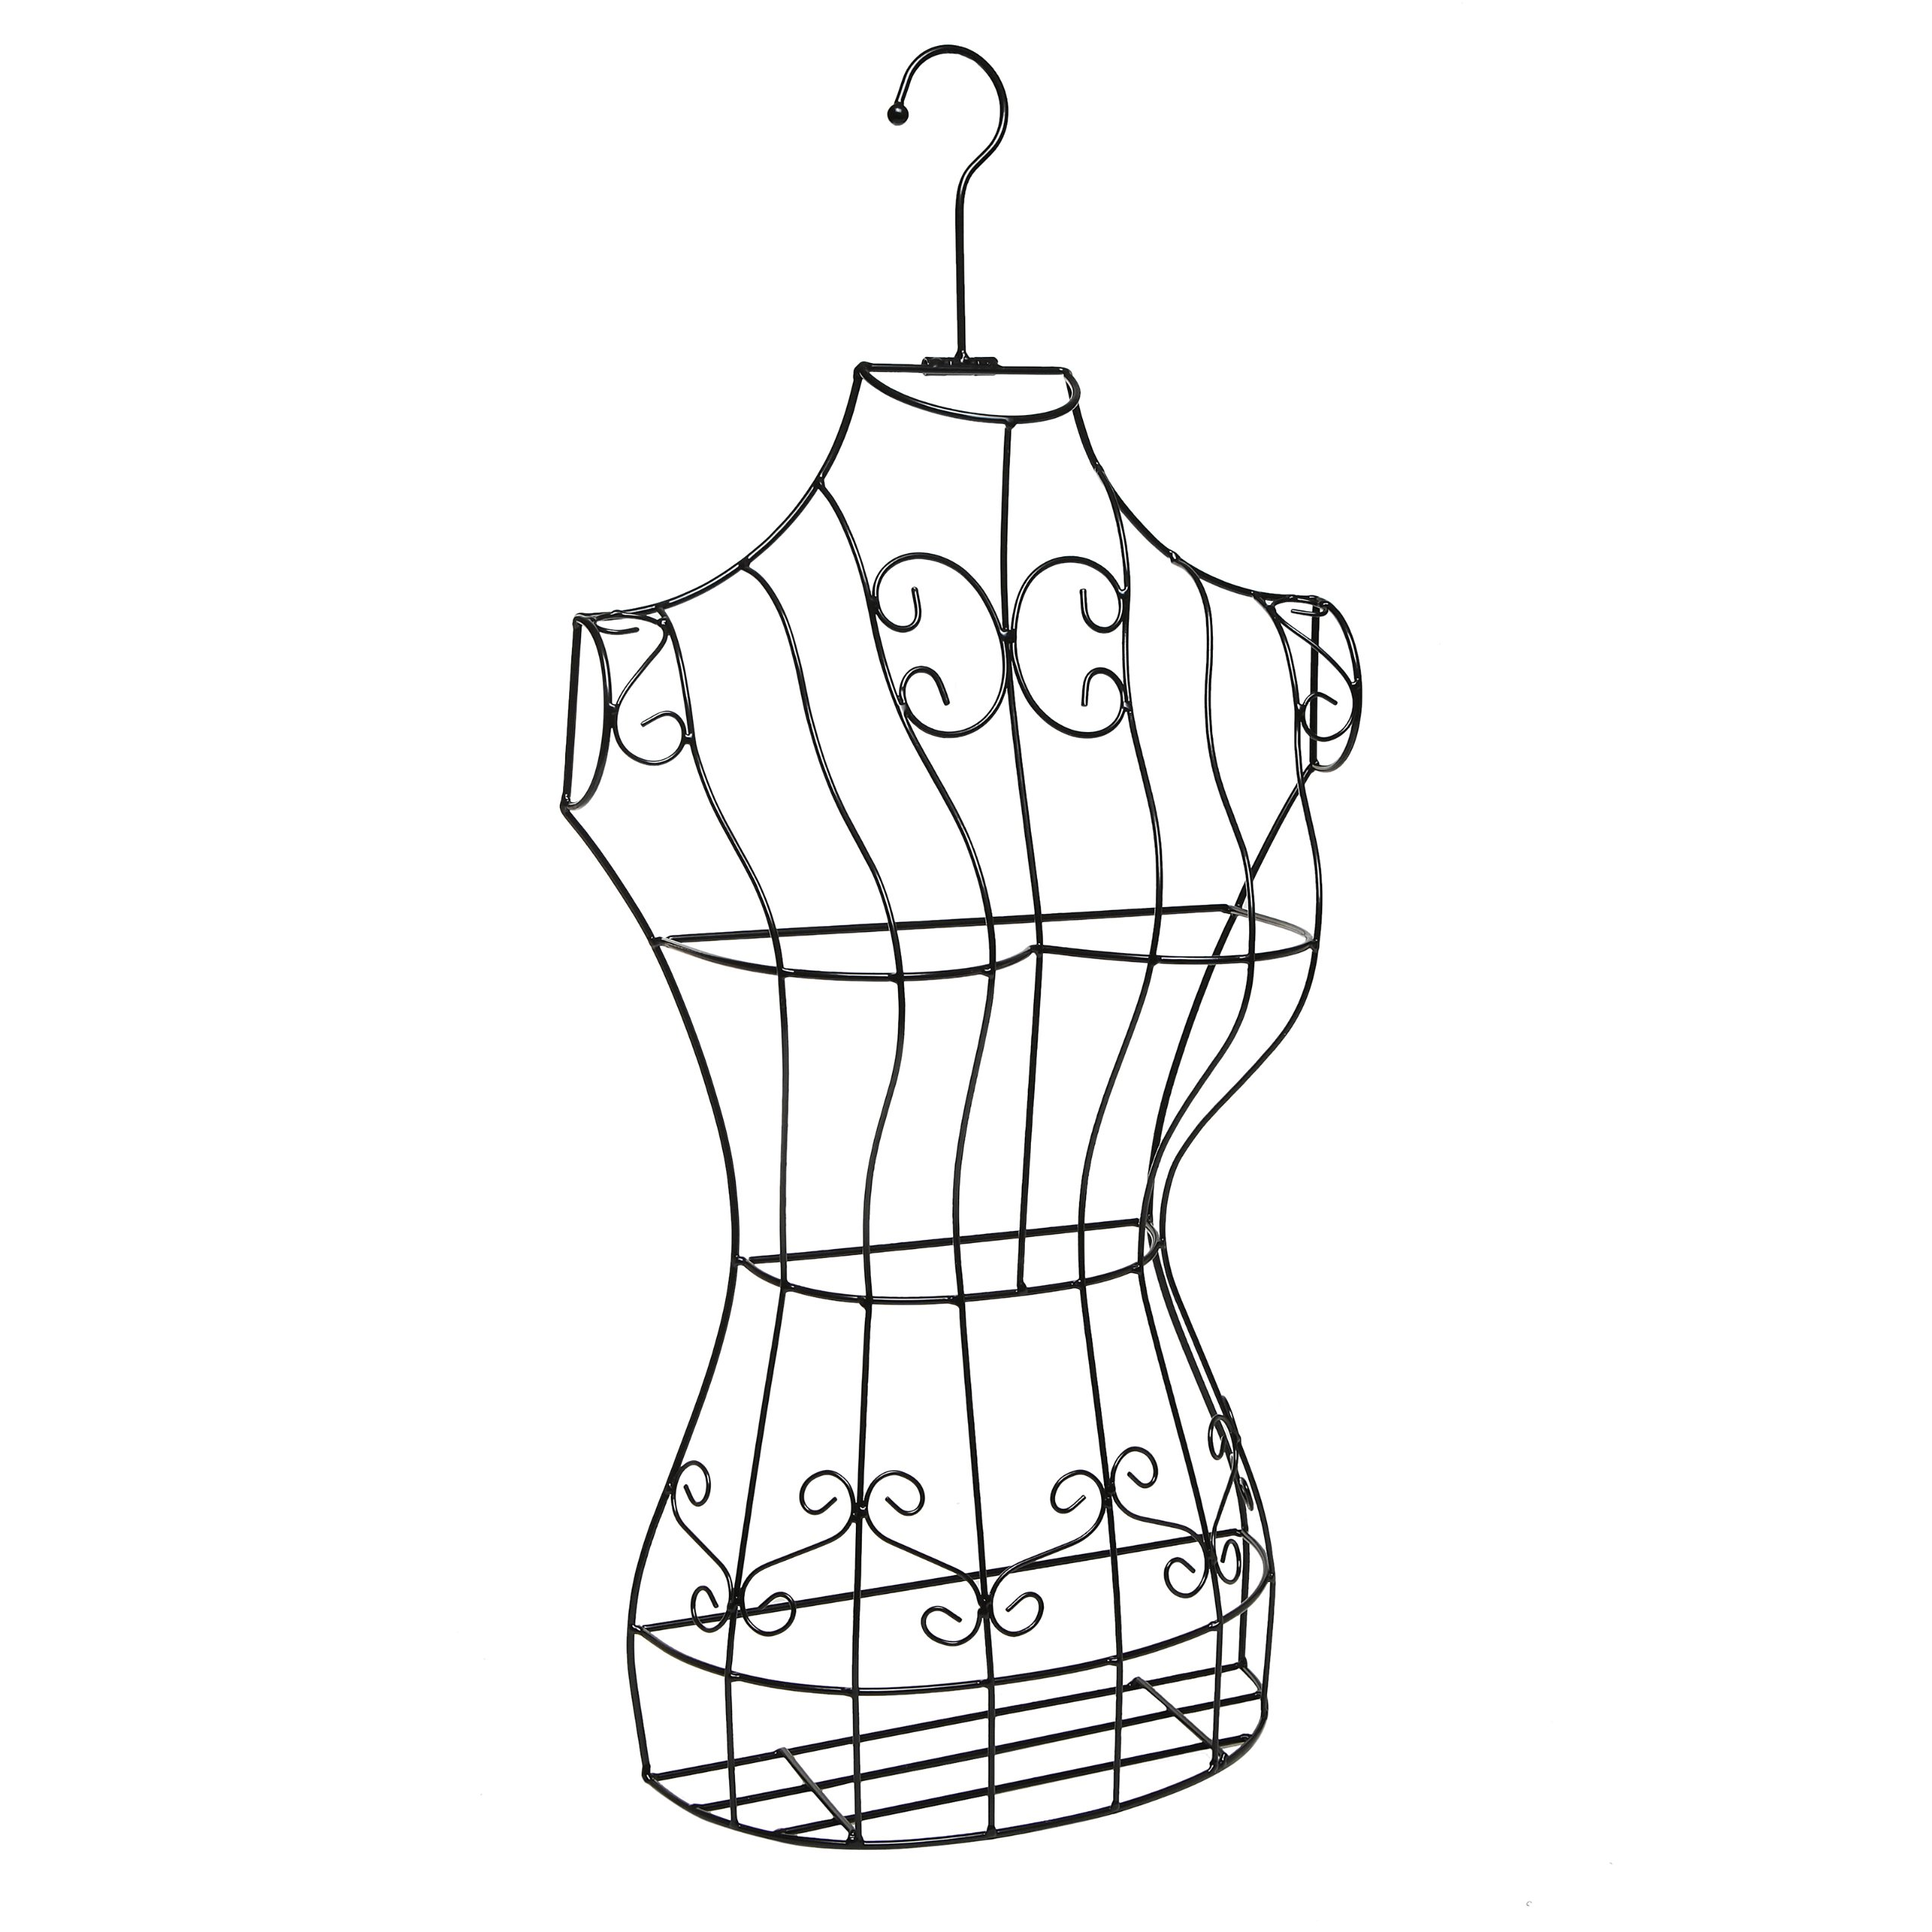 Black Metal Wire Frame Freestanding Display Stand/Hanging Dress Form Mannequin Decor w/Garment Bag by MyGift